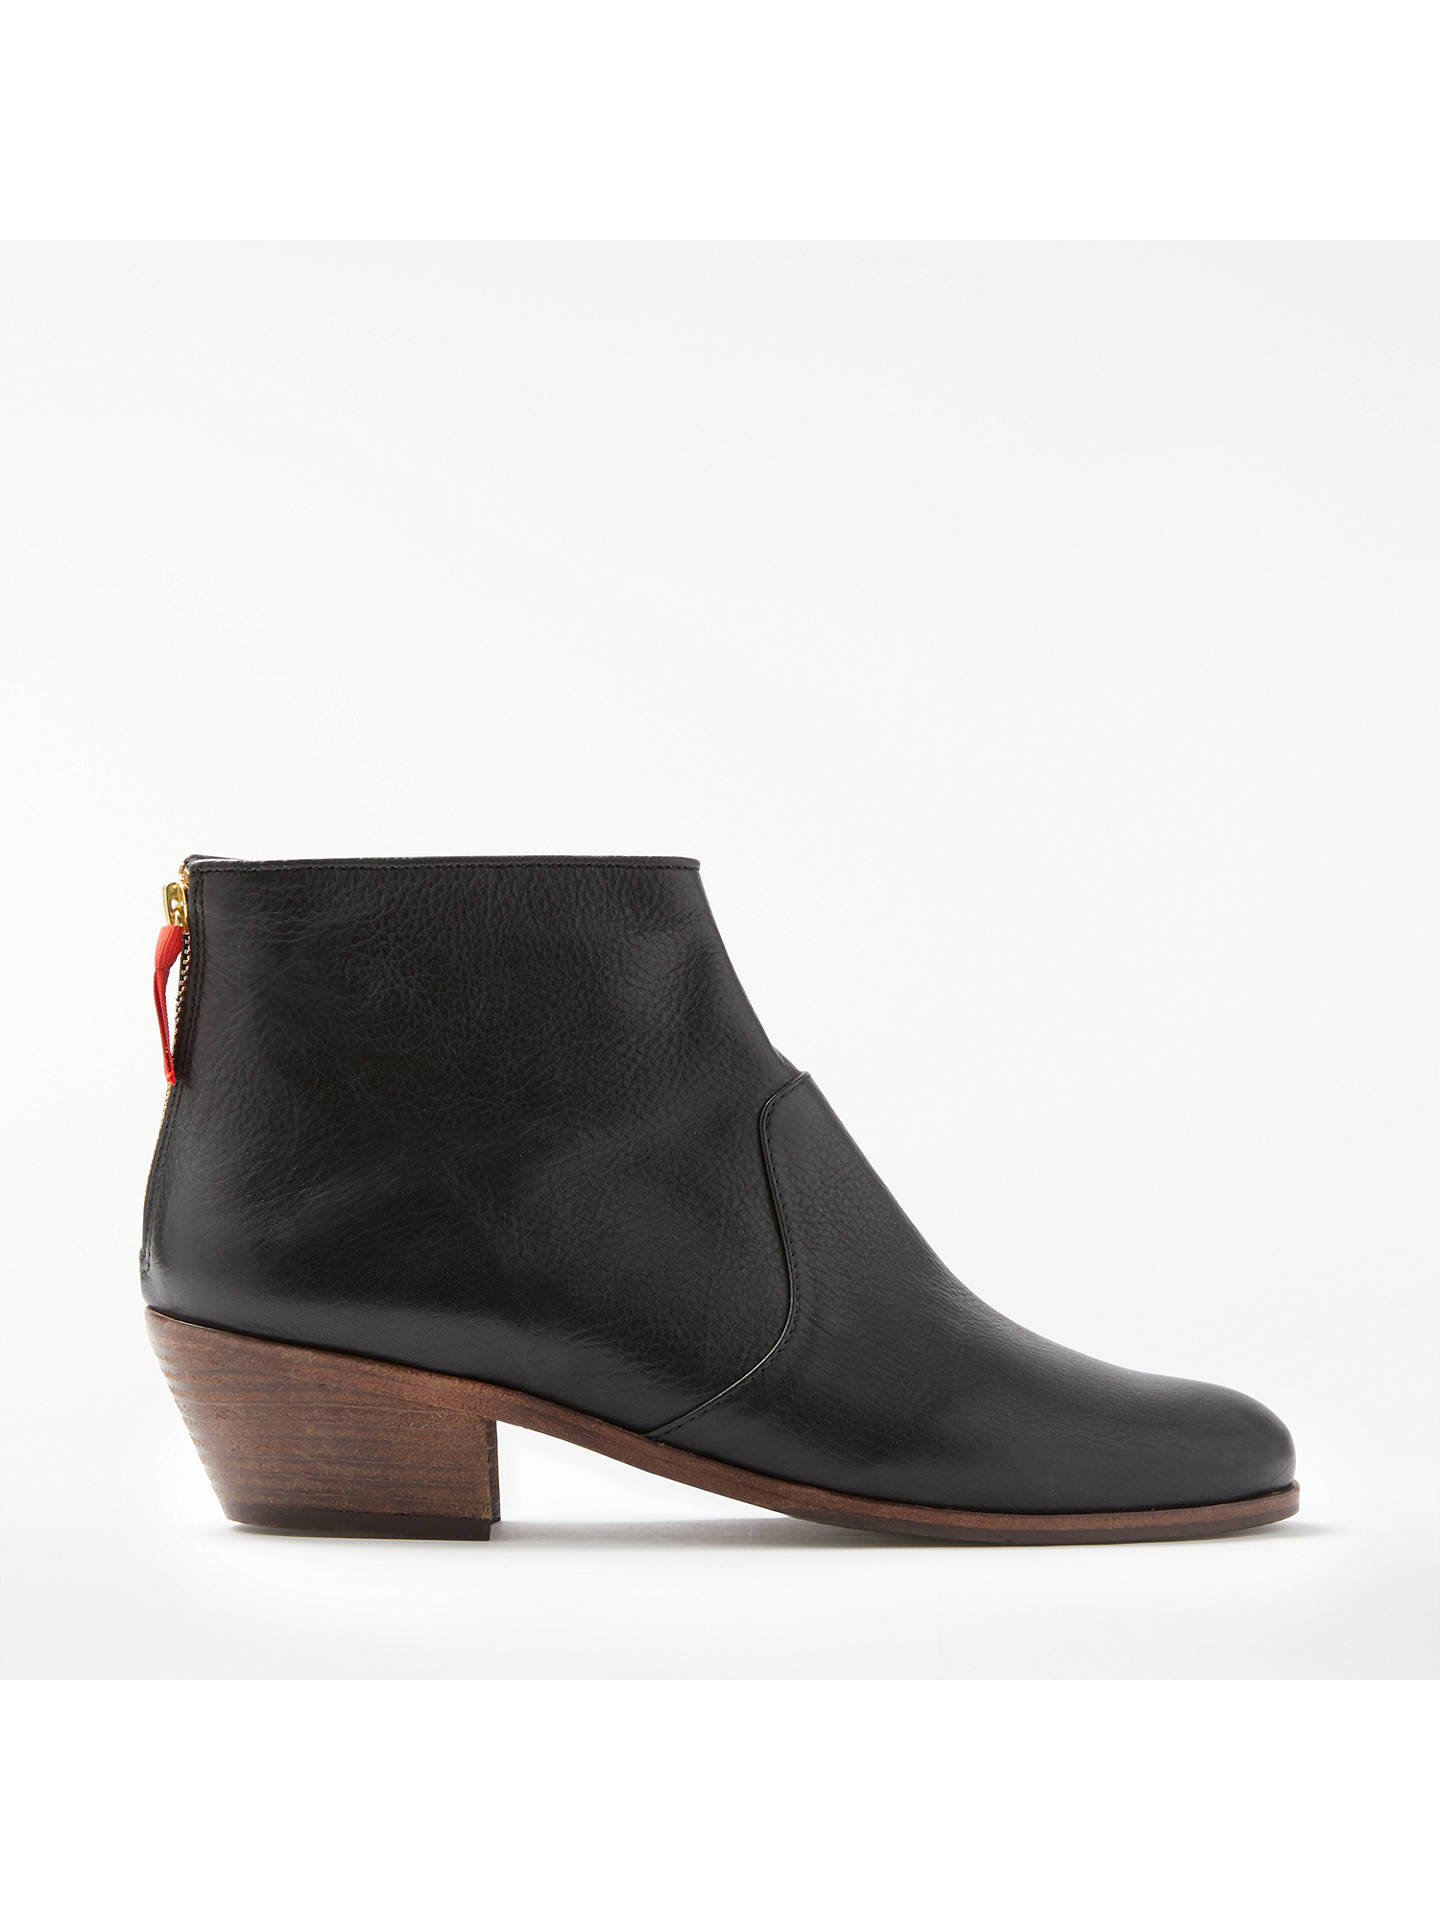 Boden Atherstone Block Heeled Ankle Boots At John Lewis